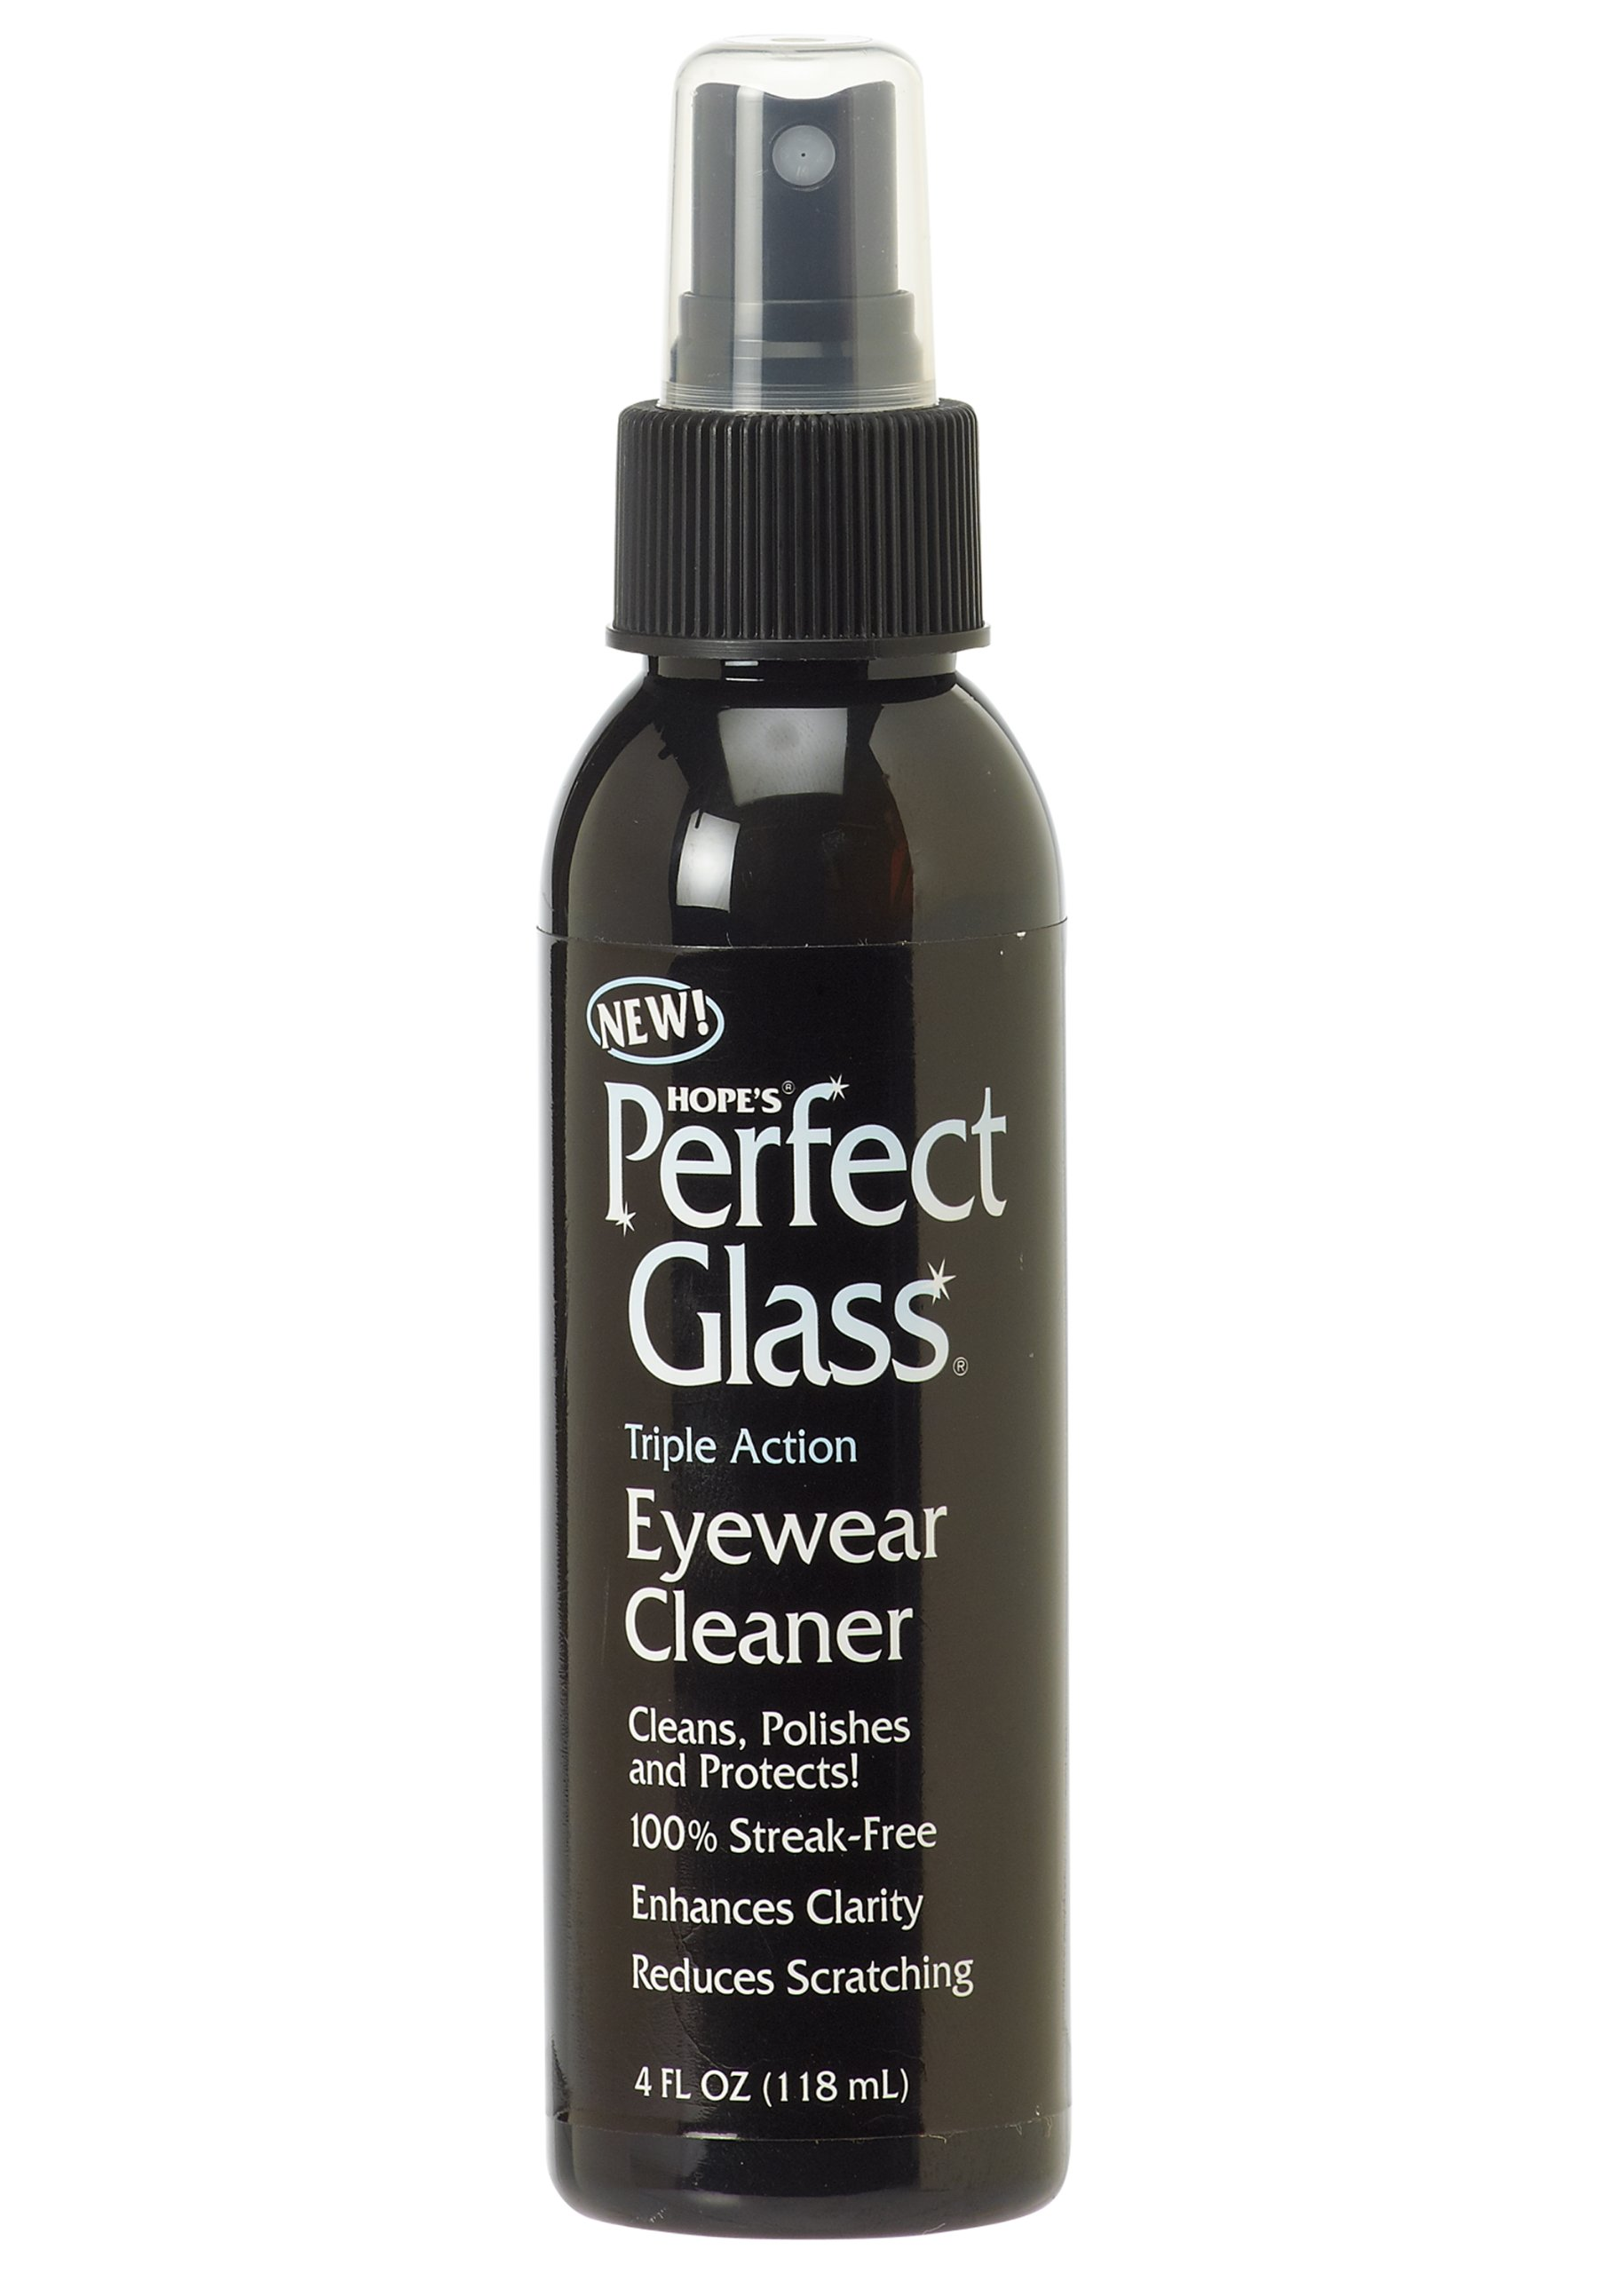 Hope's Perfect Glass Eyewear Cleaner, 4-Ounce, Case of 24, Enhances Clarity, Scratch Resistant, Streak-Free, Works on Prescription Eyewear and Sunglasses